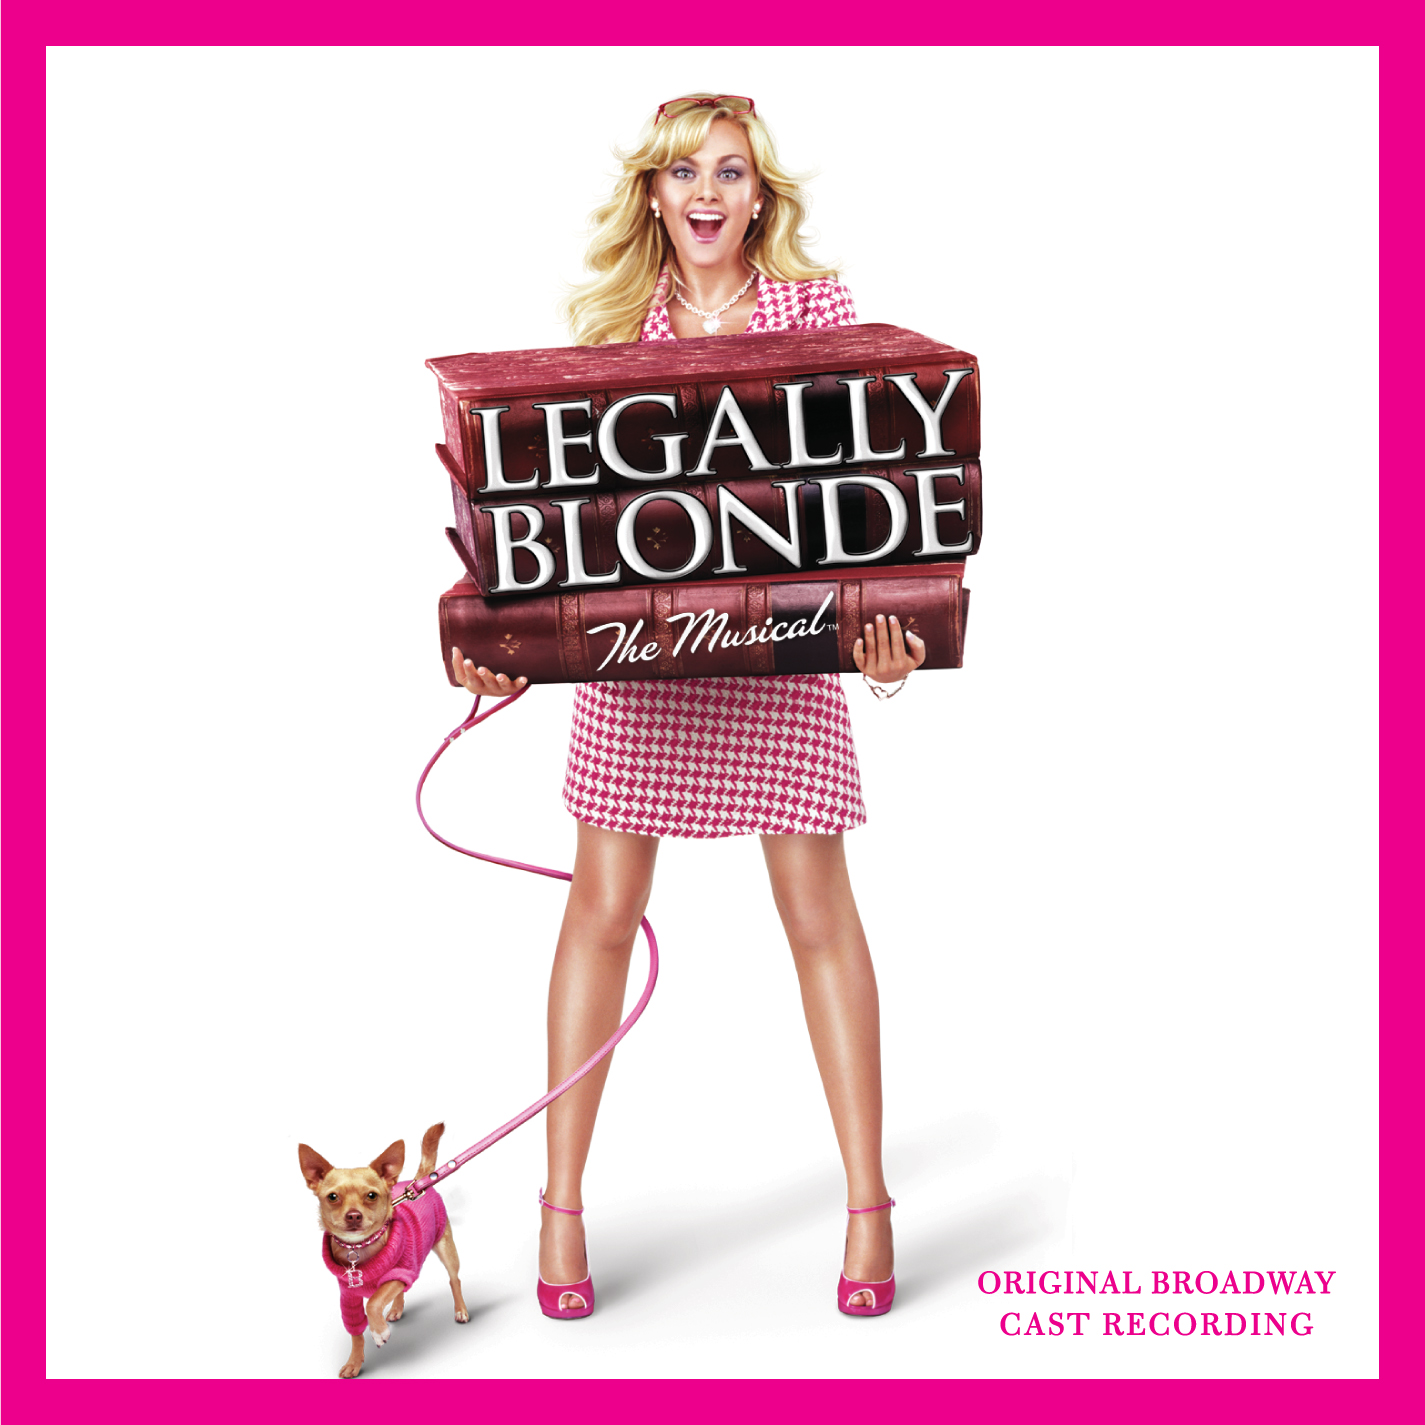 LEGALLY BLONDE Comes To Civic Center 2/24-3/1